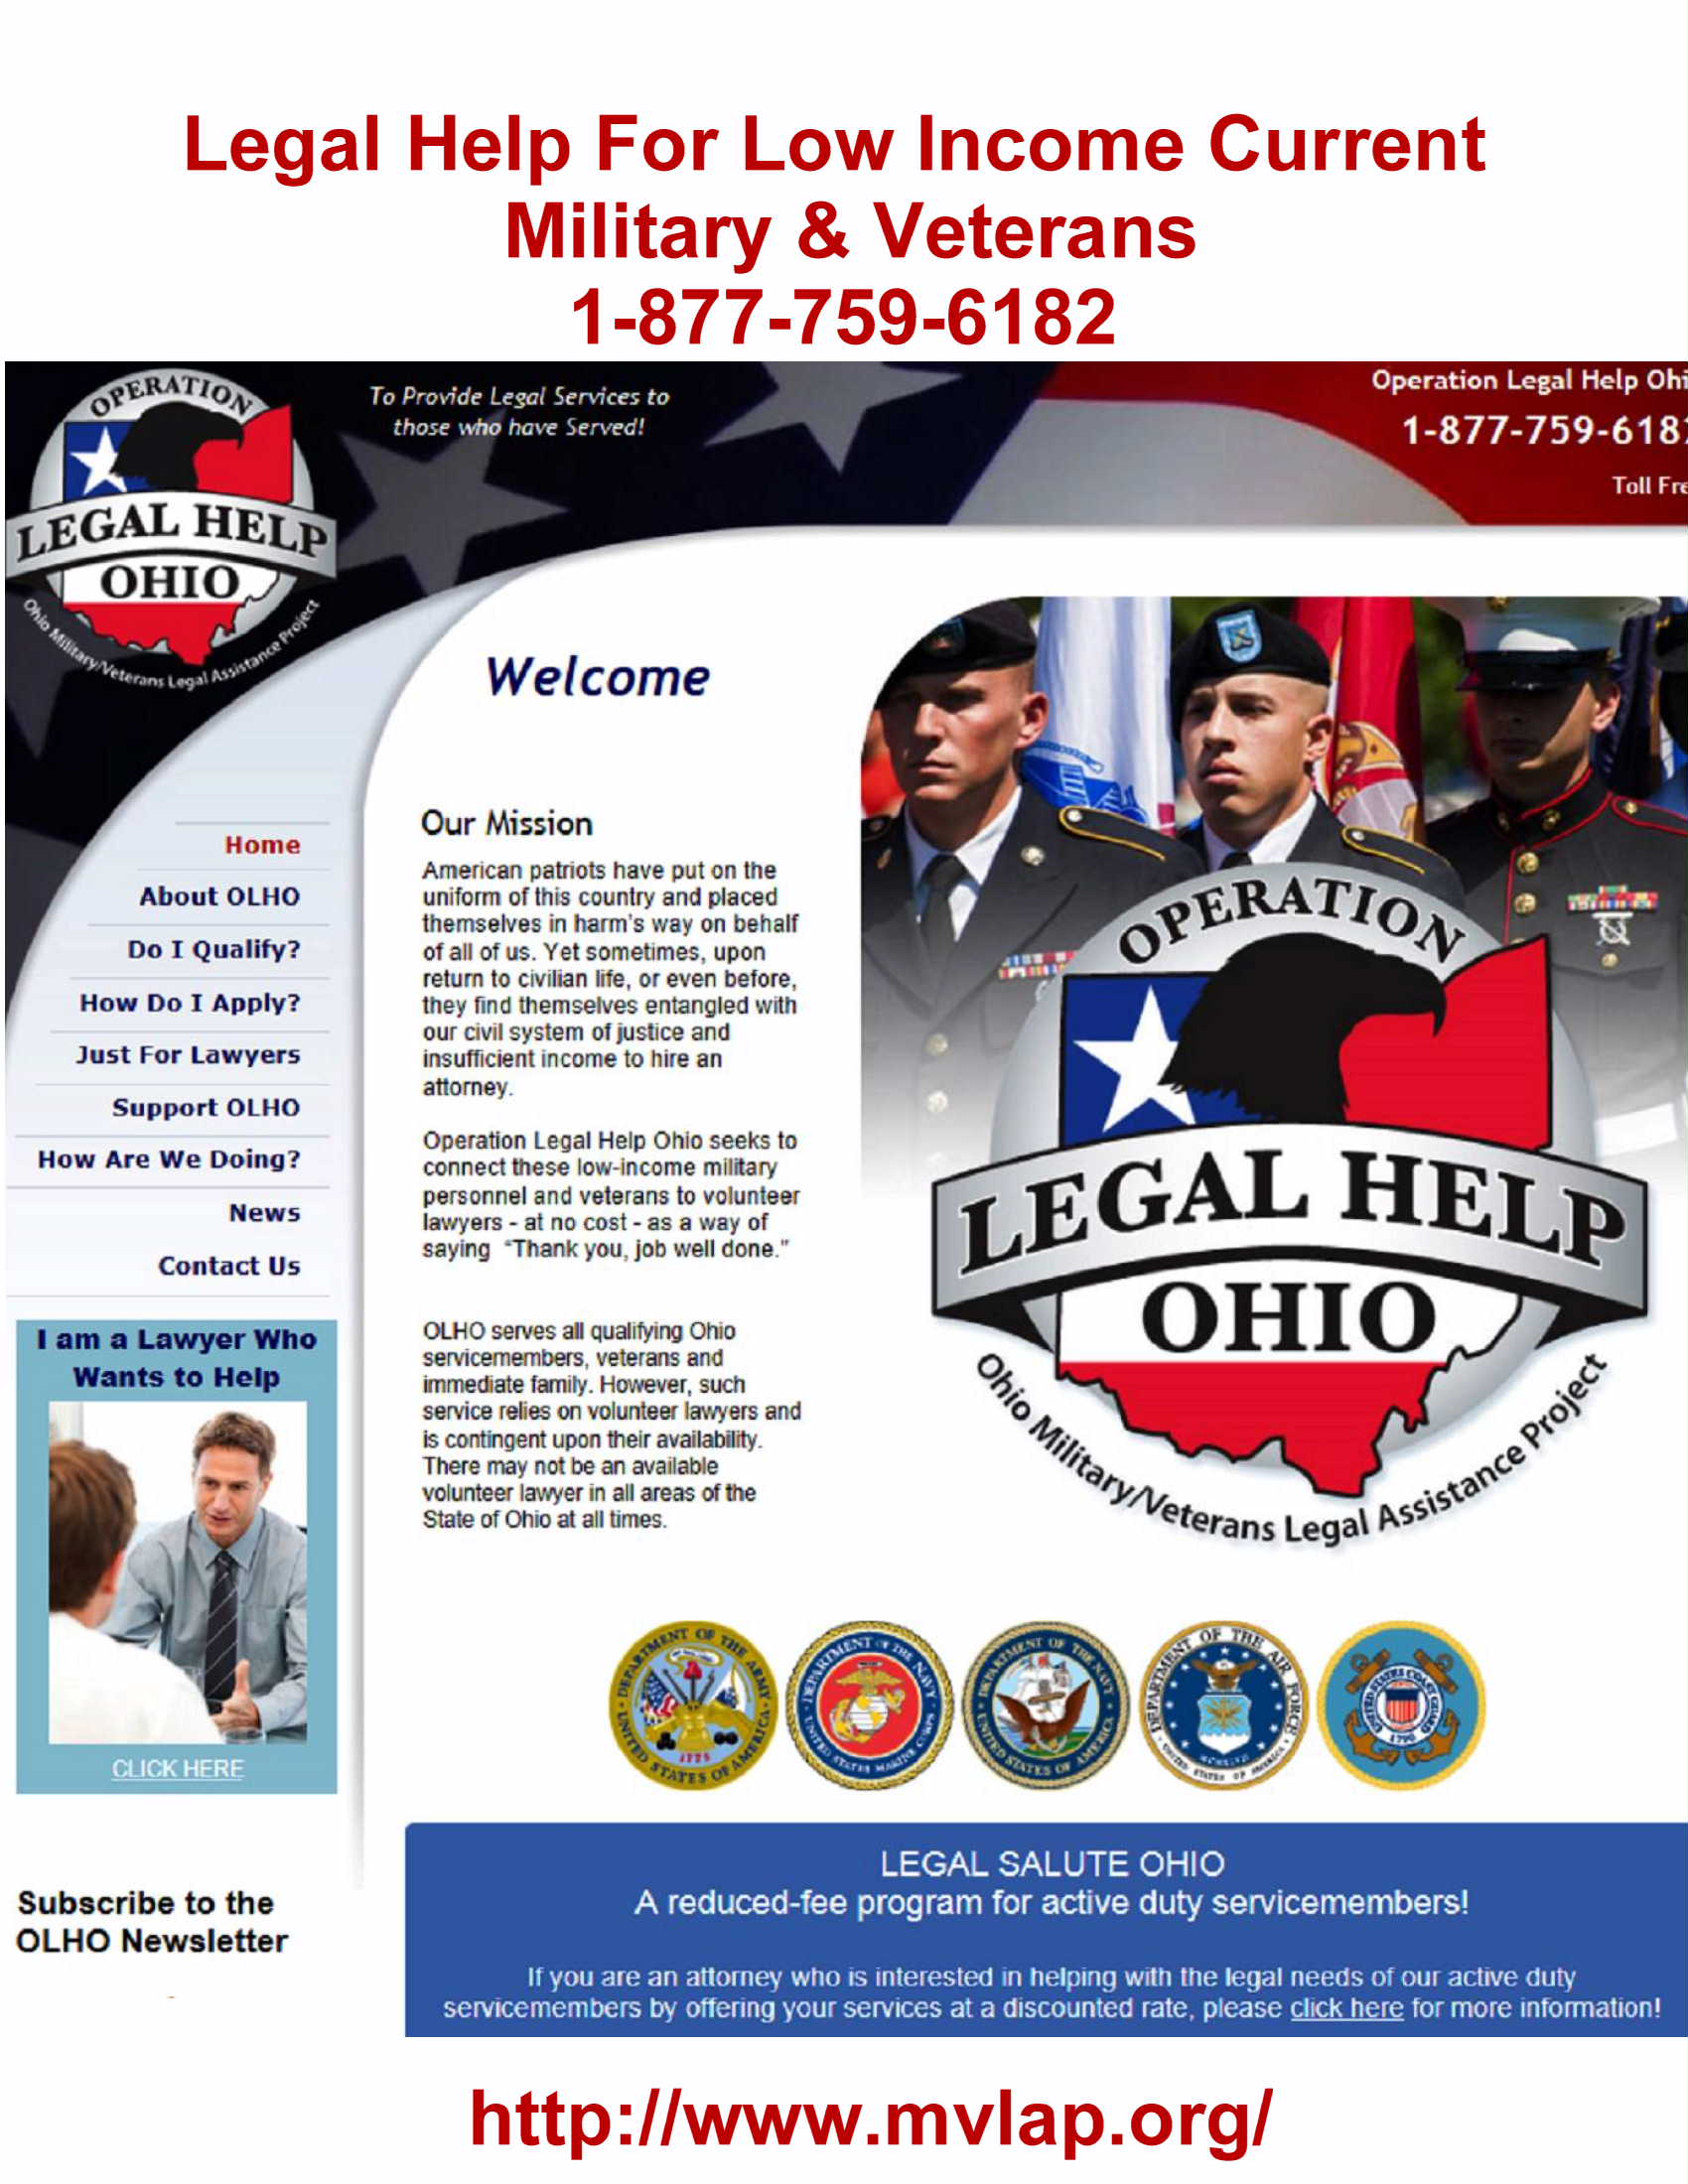 Legal Help Ohio 1 Sheet - CDC Done - 5-015